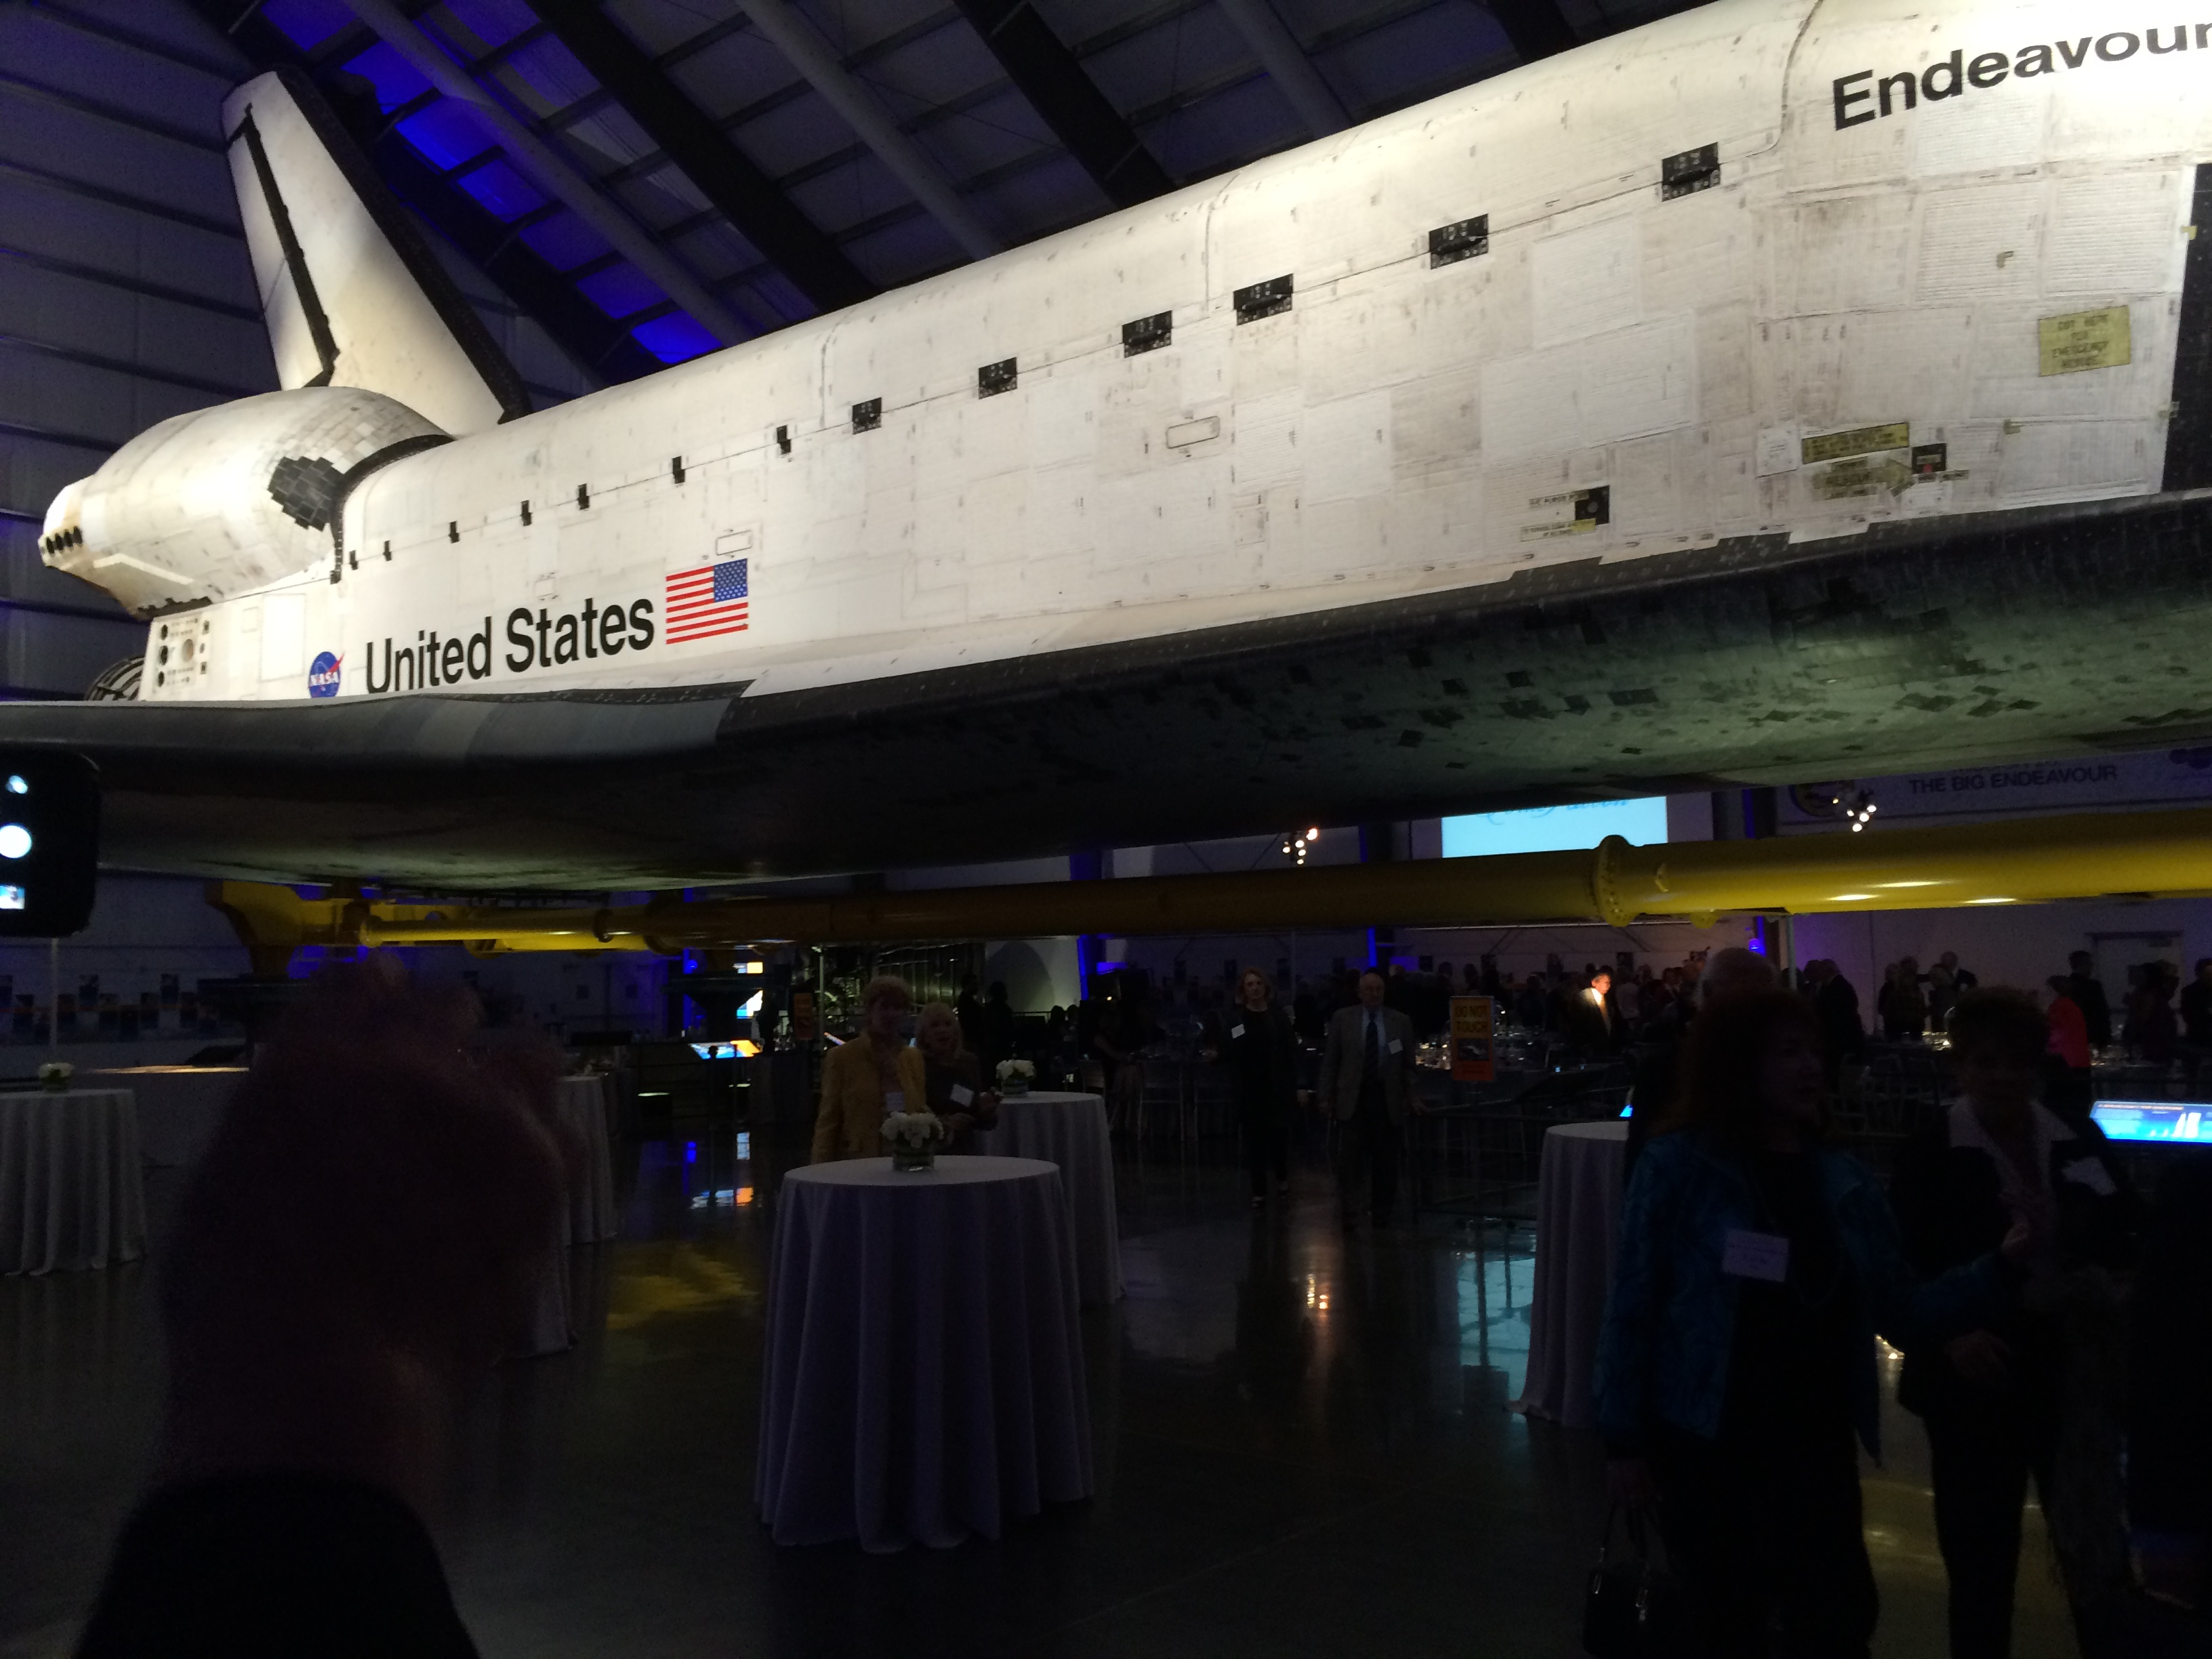 Endeavour Space Shuttle 2015